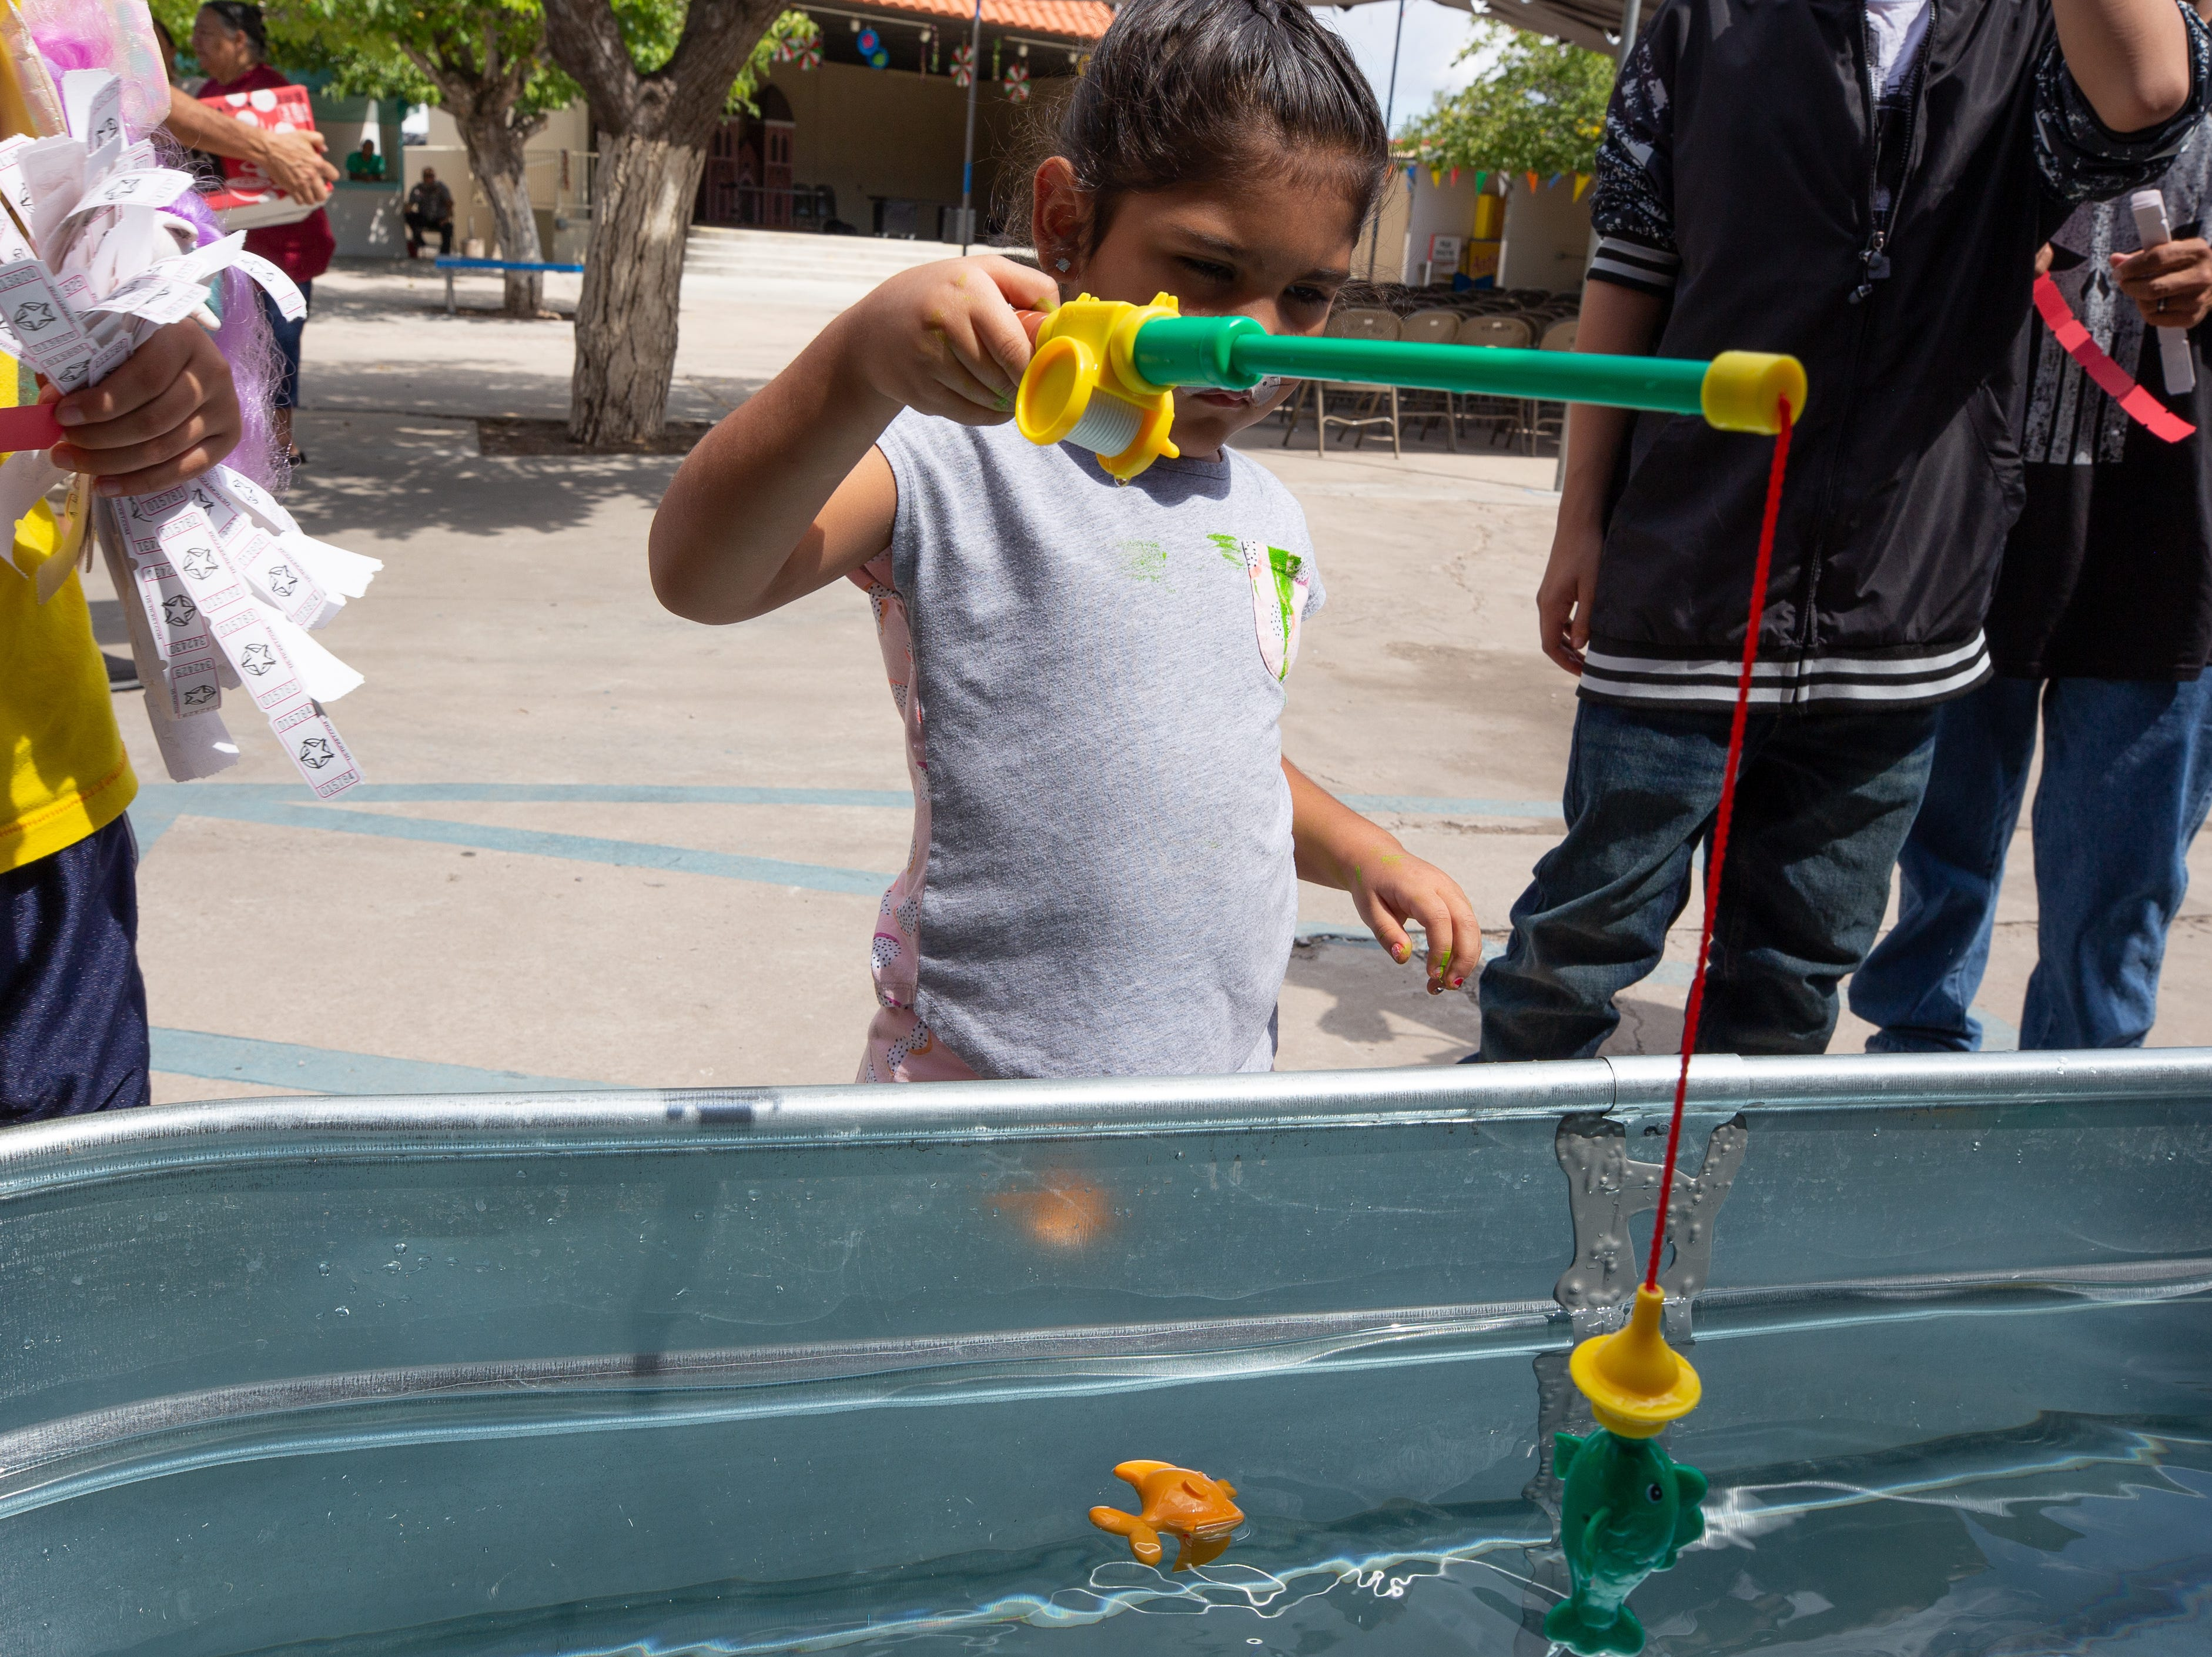 Camila Nuñez, 4, reels in her fish at the fishing pond booth at the St. Genevieve Fiesta on Saturday, Sept. 8, 2018.